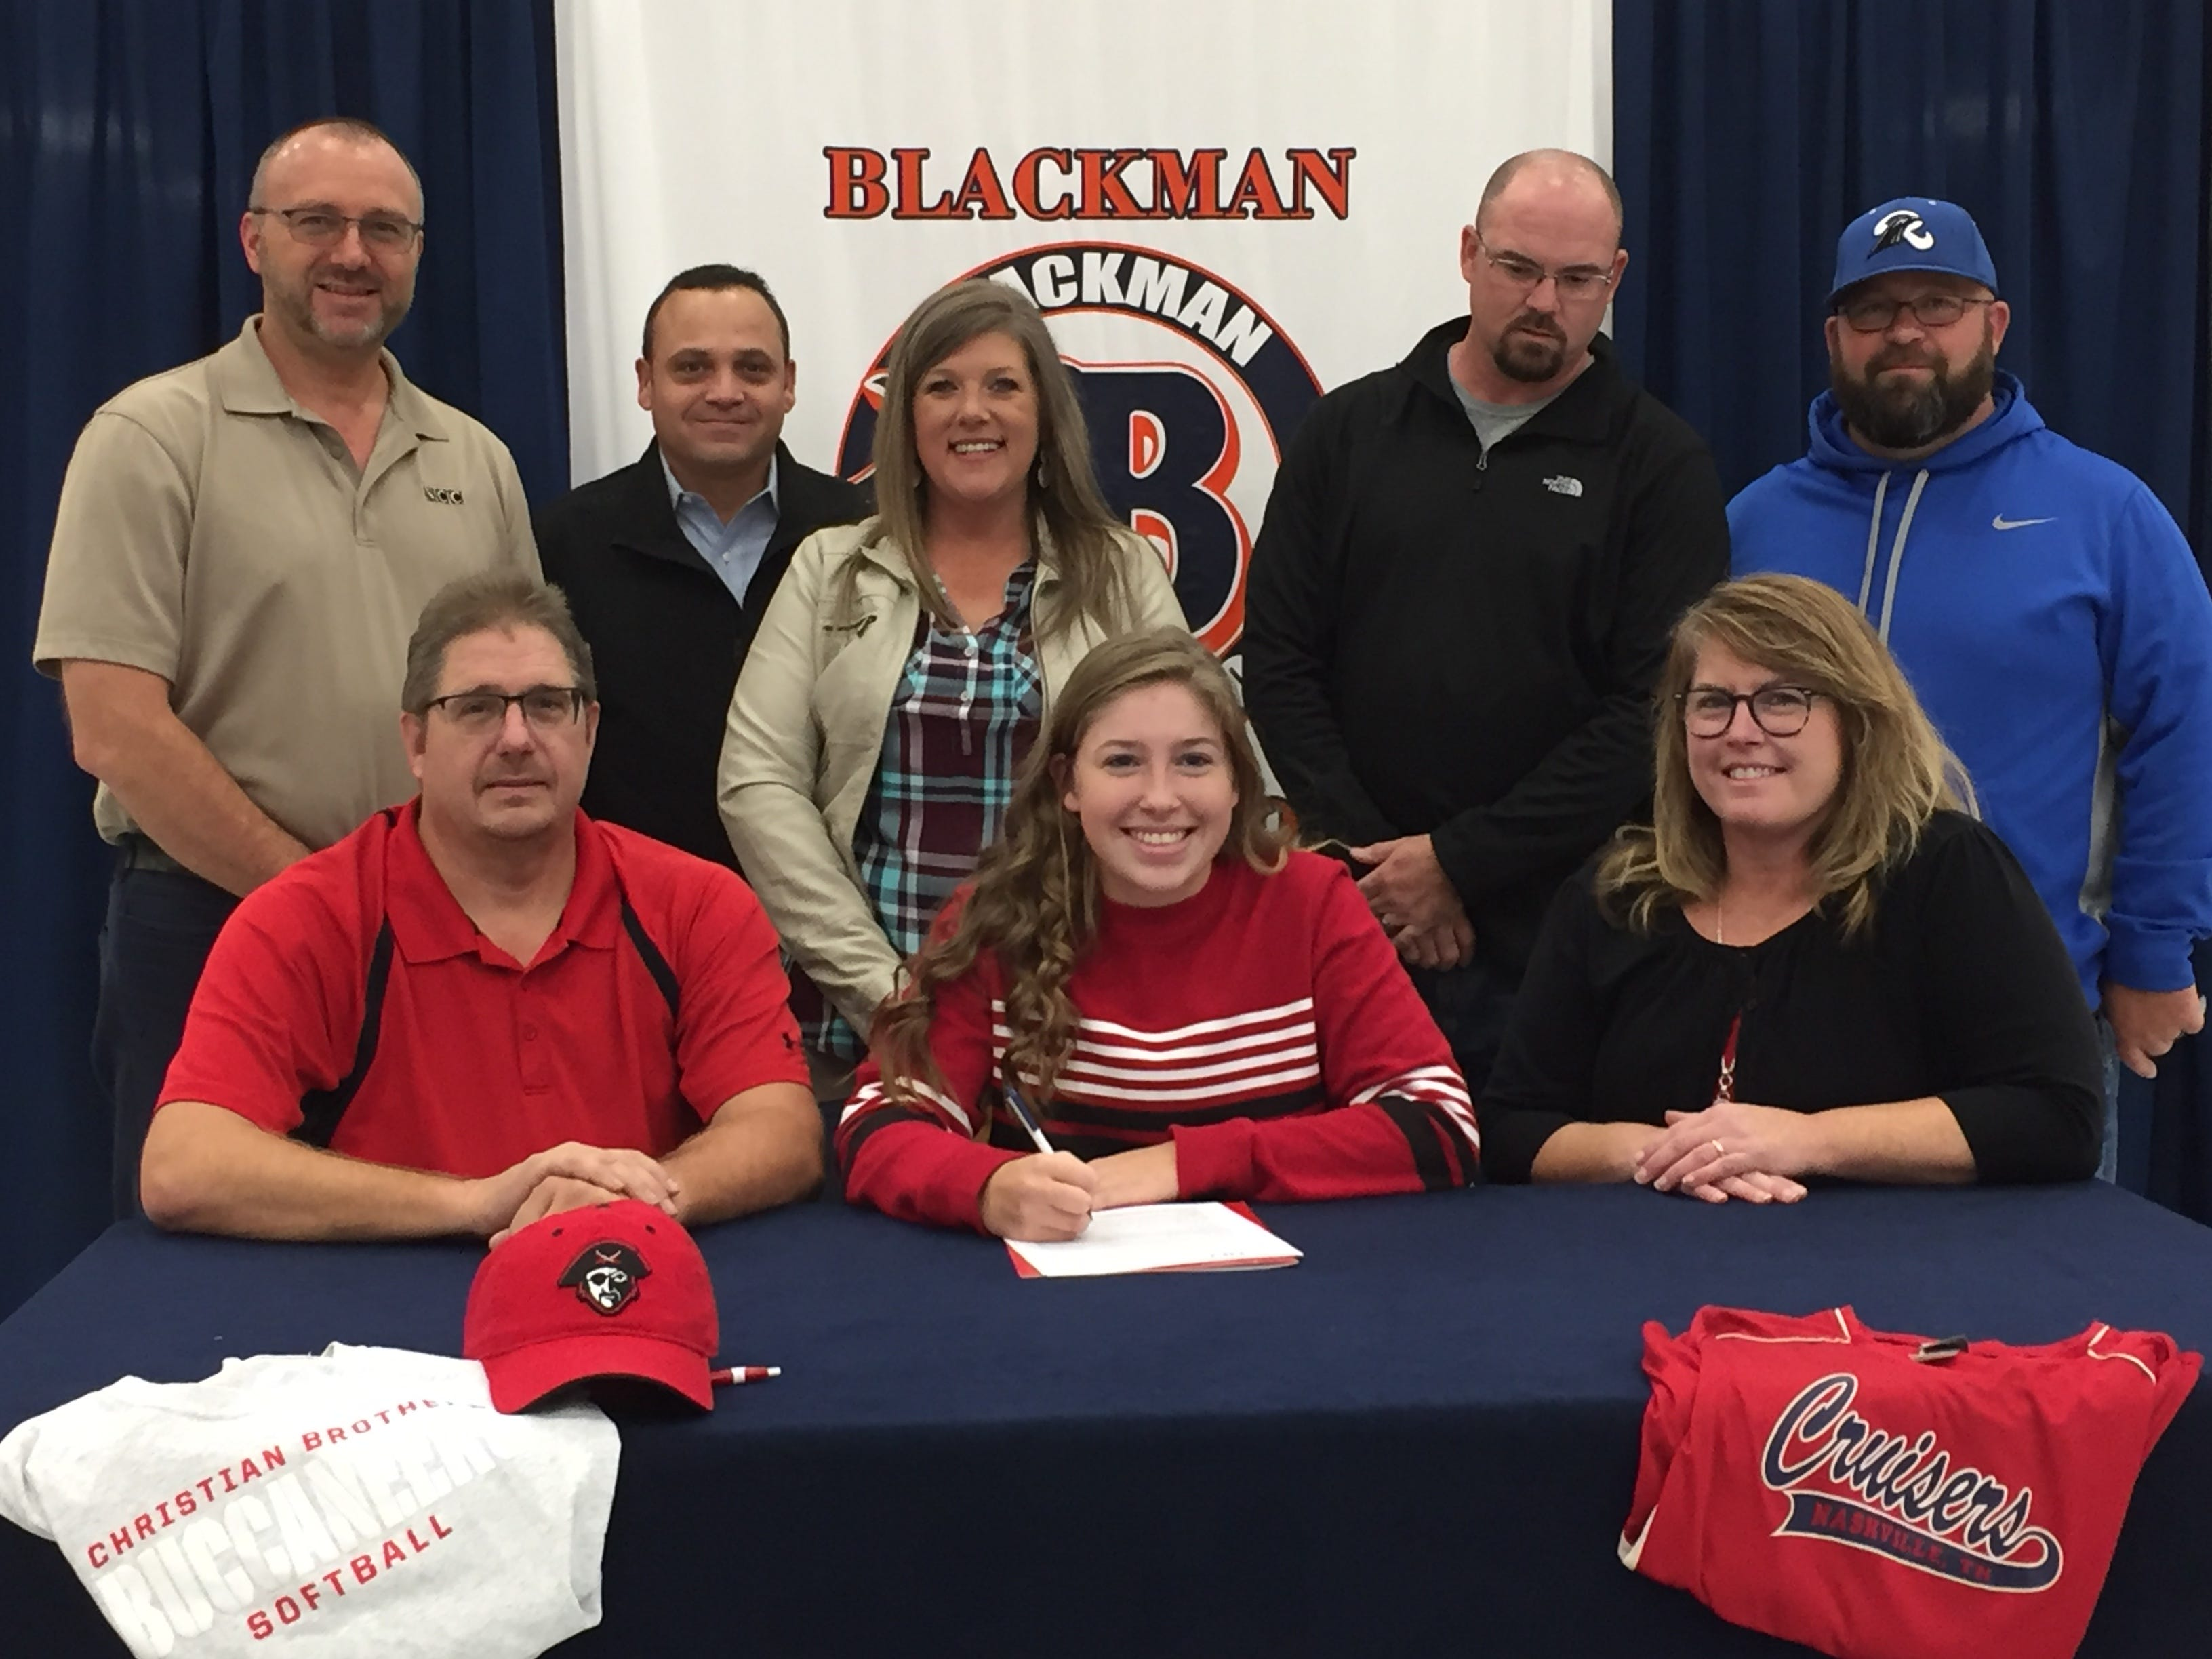 Blackman's Elaina McGill signed with Christian Brothers to play softball.